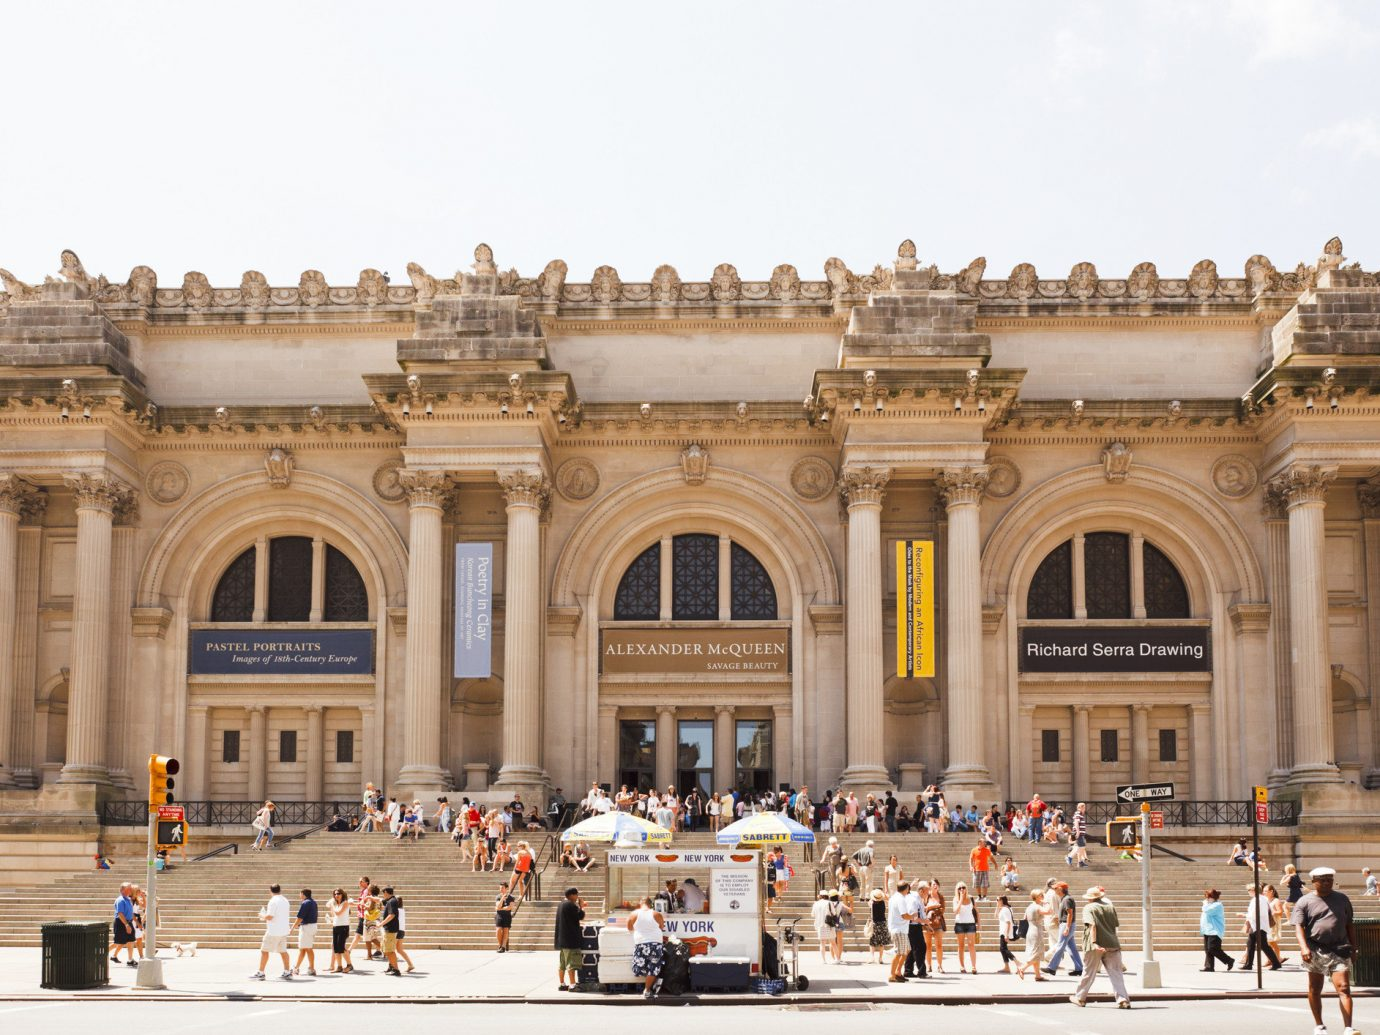 Romance Trip Ideas road outdoor plaza structure landmark palace town square Architecture tourism ancient history opera house facade ancient roman architecture ancient rome bullring arch colonnade